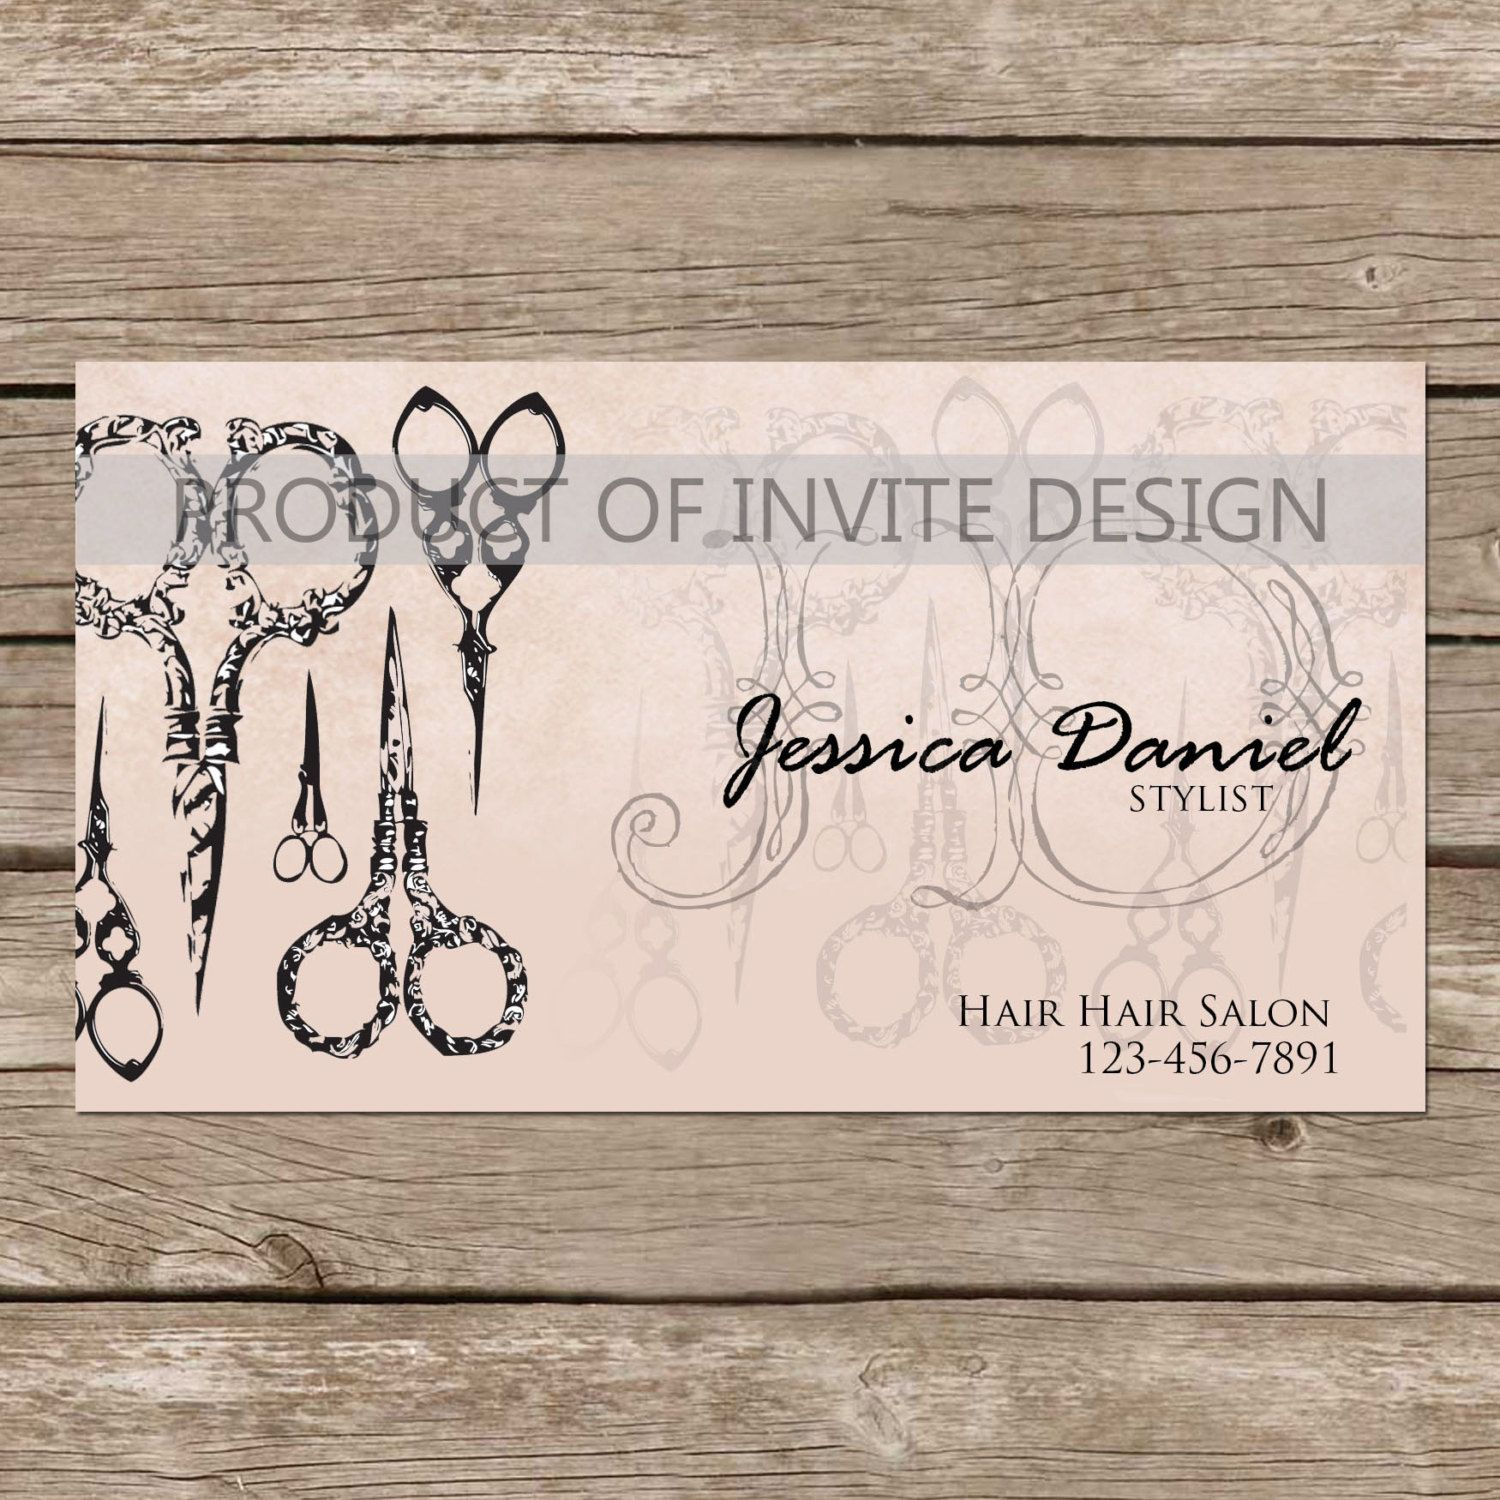 Hair Stylist Quotes For Business Cards B | hair salons | Pinterest ...